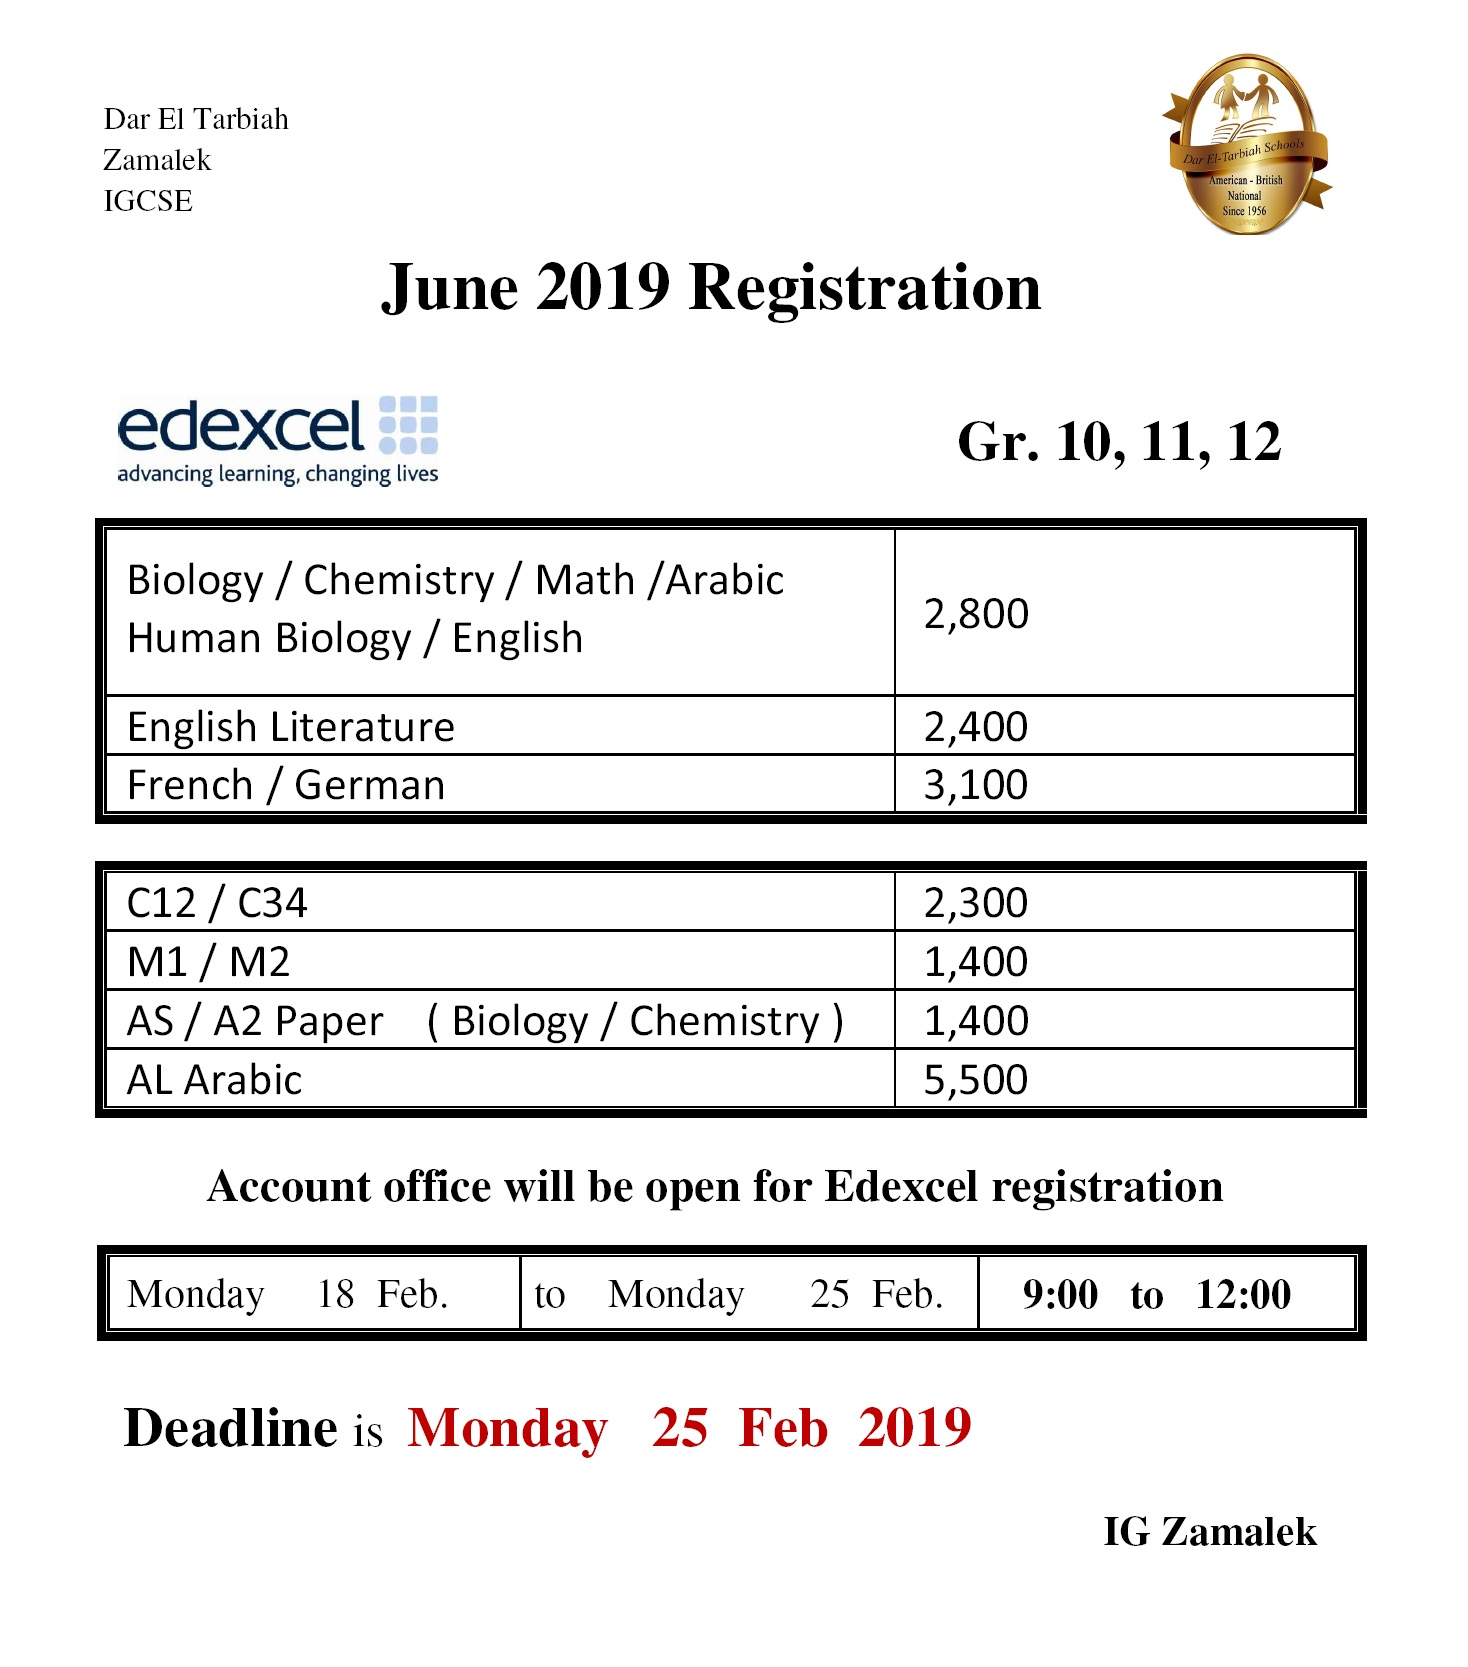 IG Zamalek : Edexcel June 2019 Registration